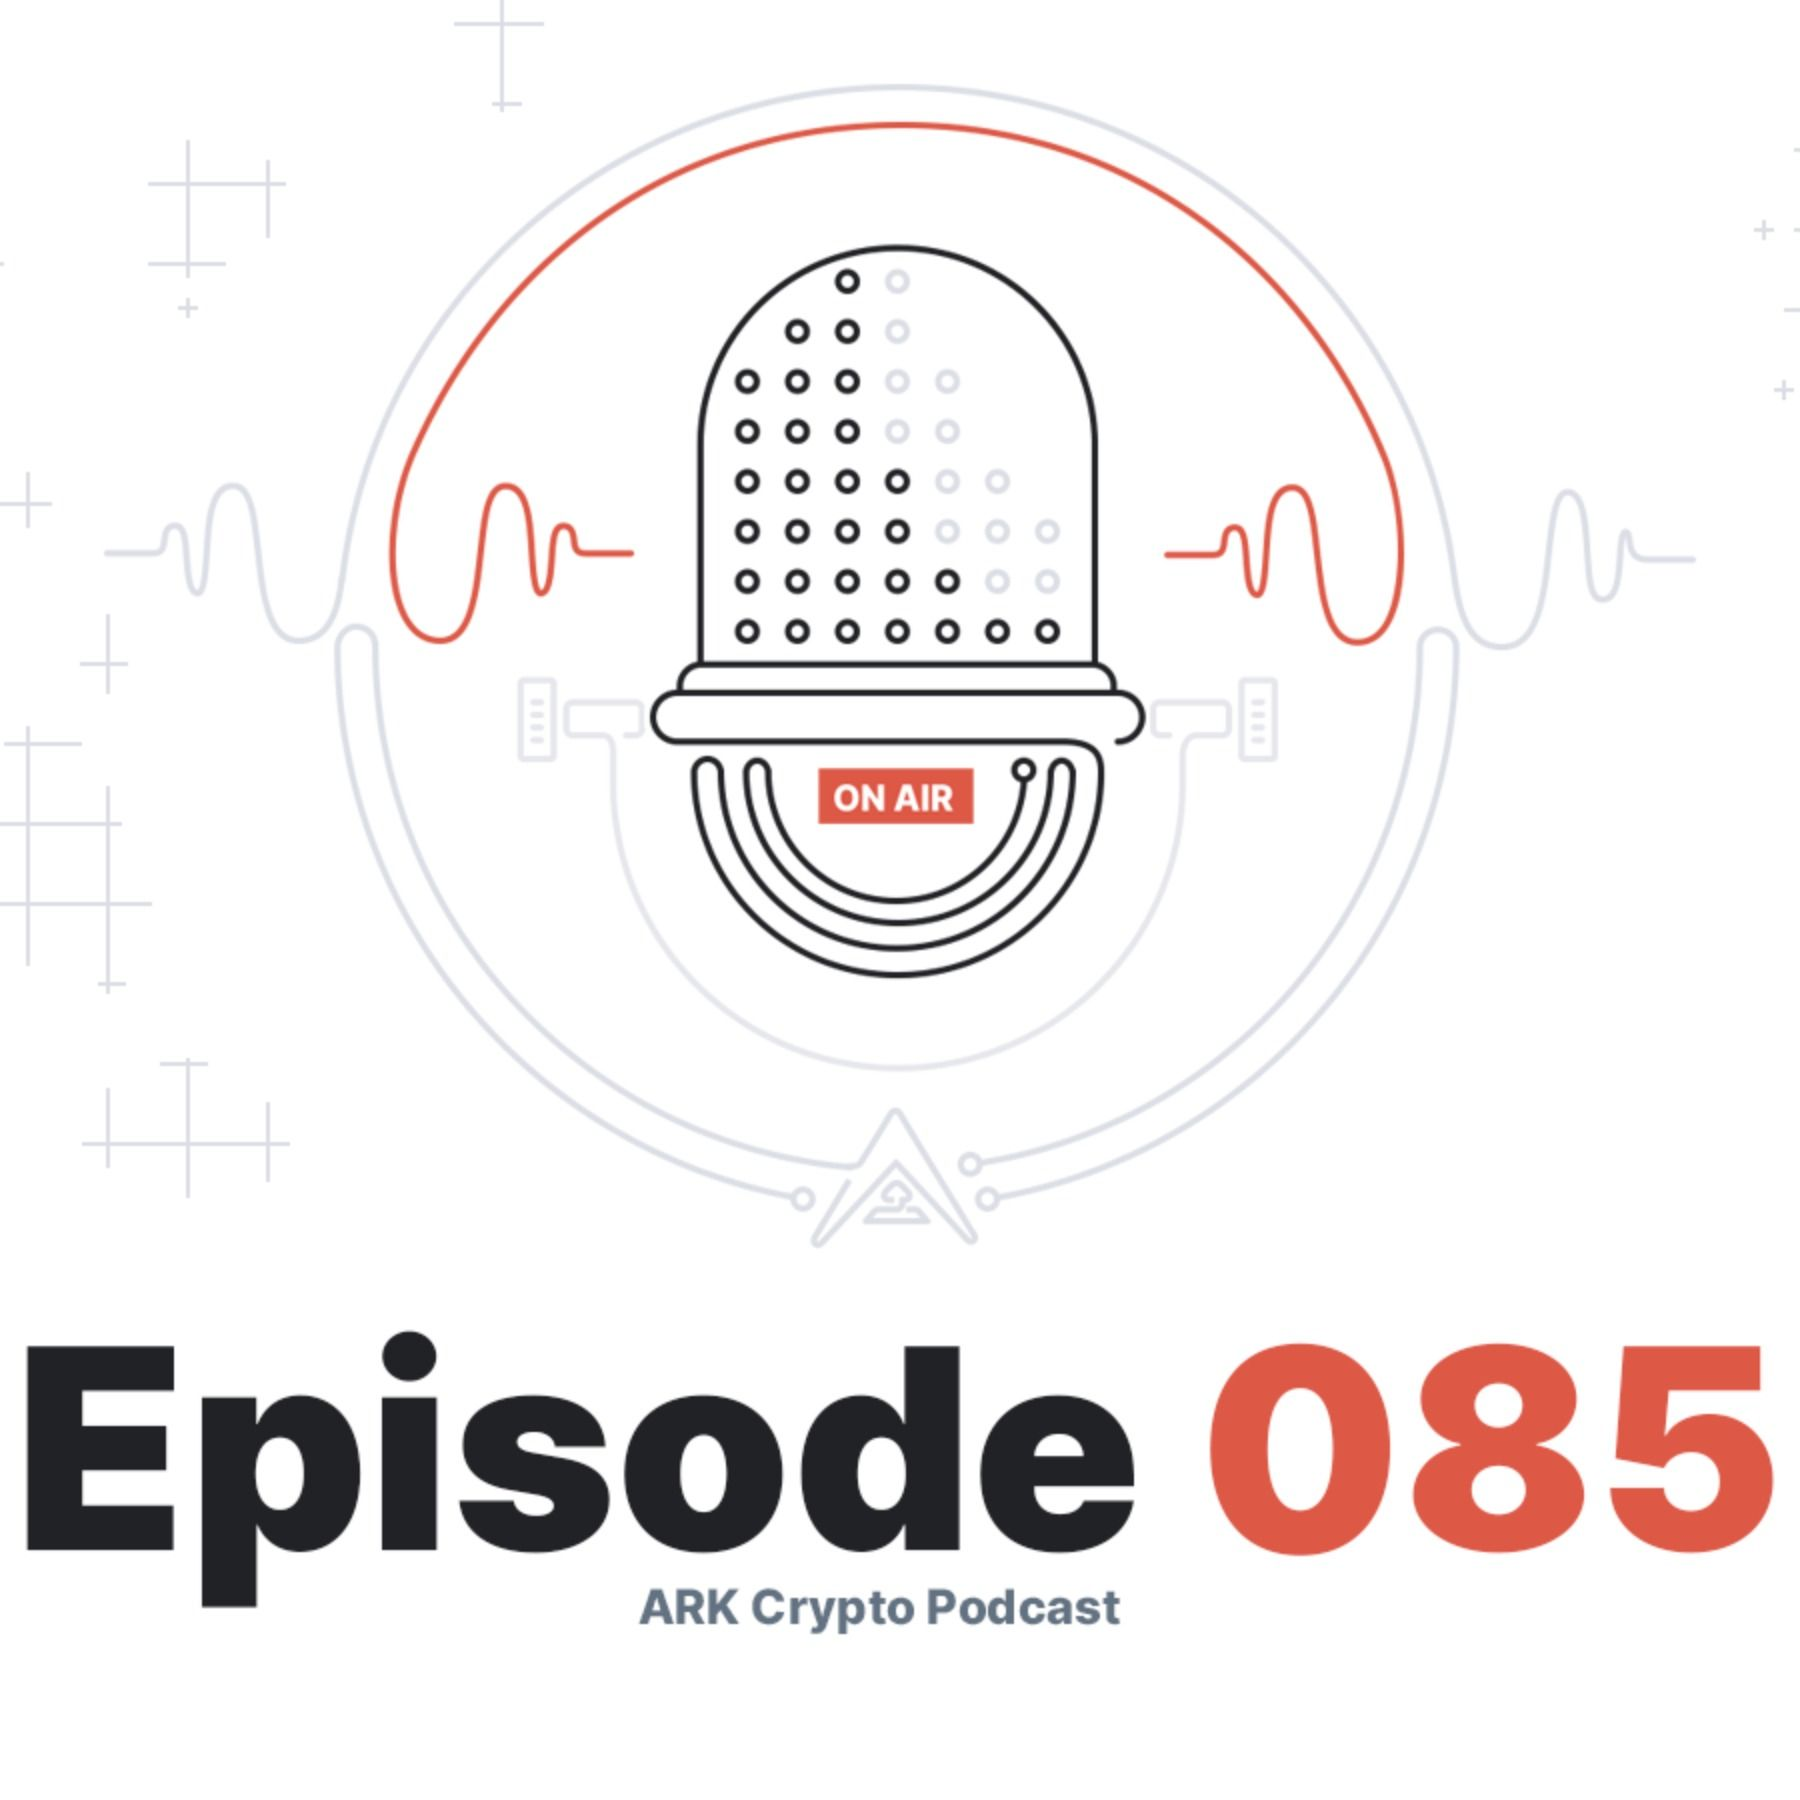 ARK Crypto Podcast #085 - Reacting to ARK Descriptions on Crypto Directory Websites (Part 1)